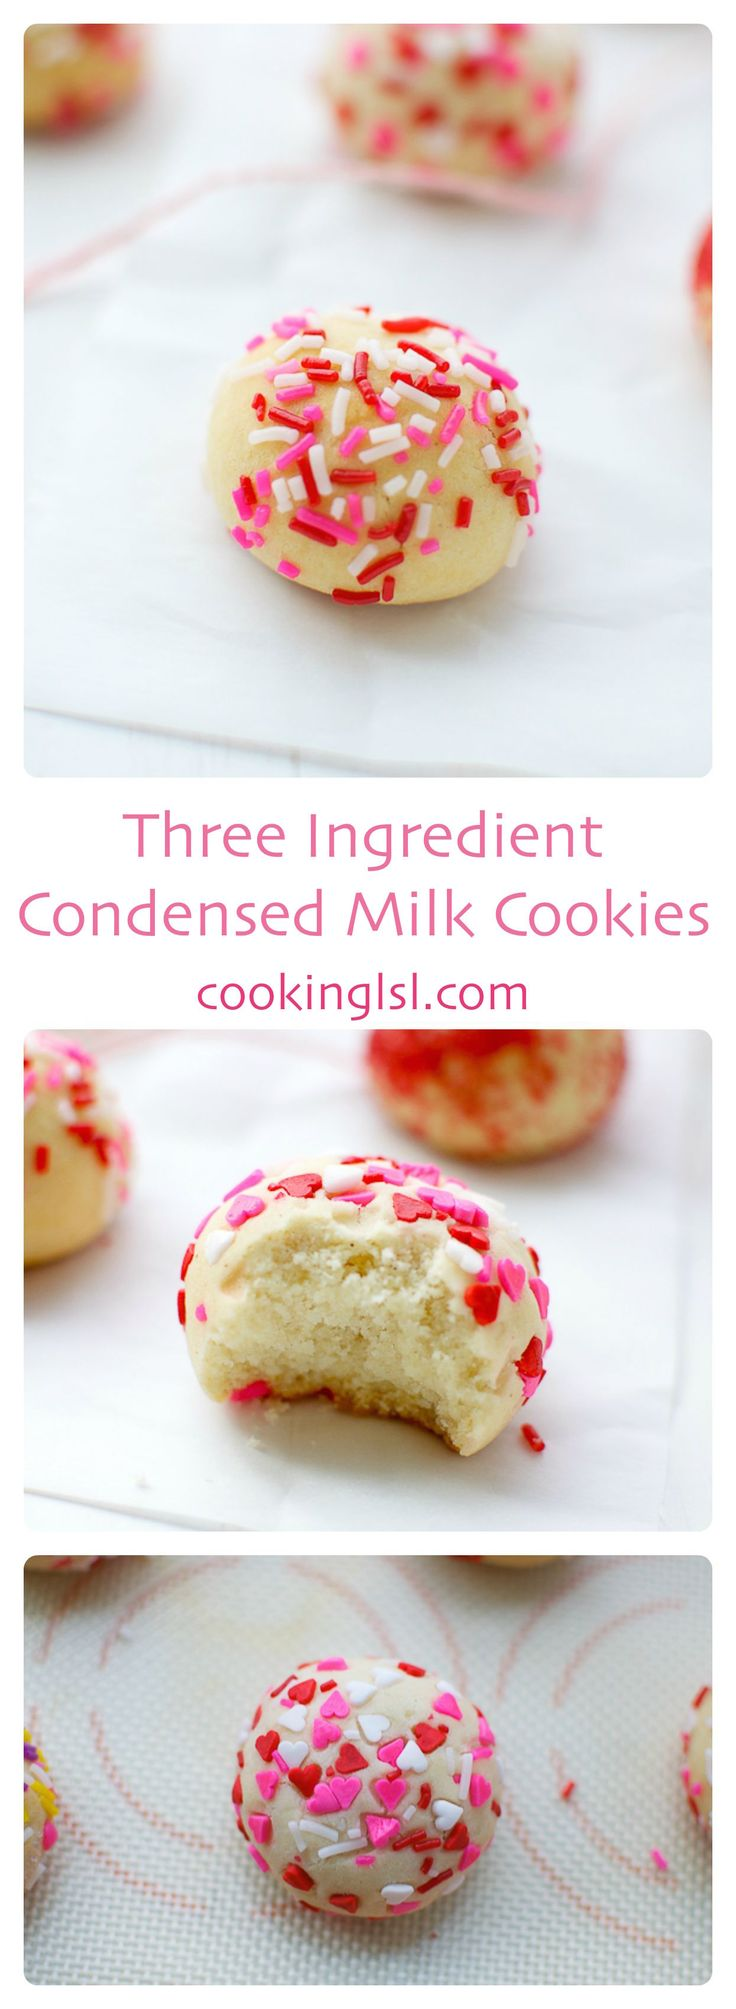 Cookie recipes using condensed milk